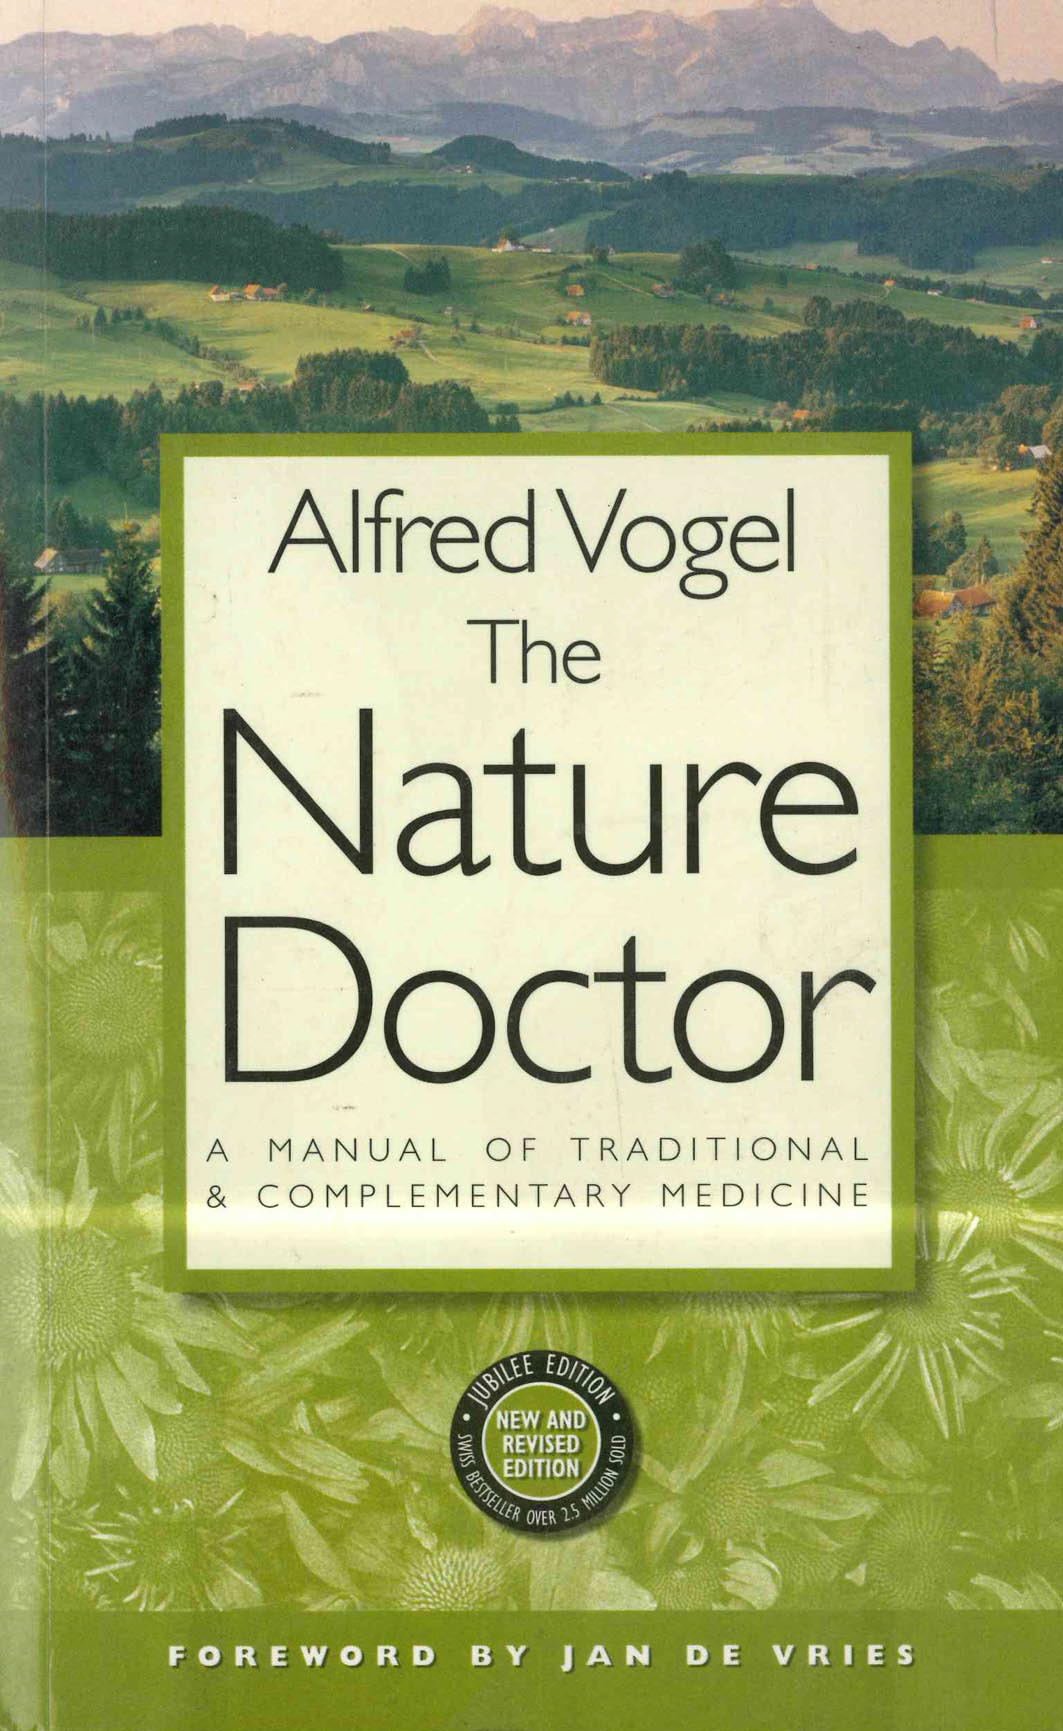 The Nature Doctor A Manual of Traditional and Complementary Medicine